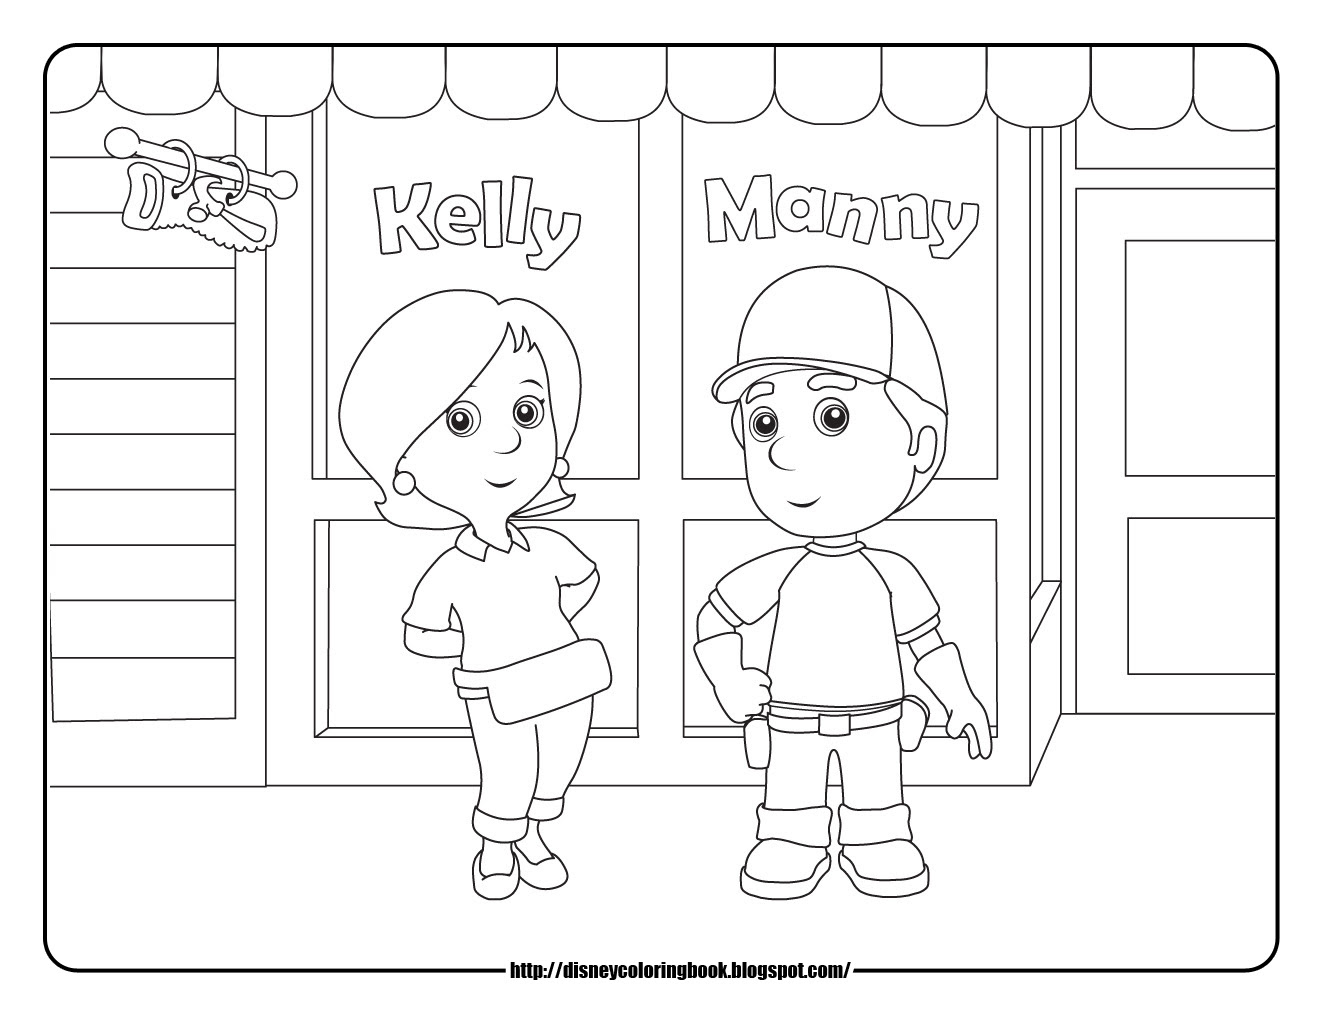 Handy Manny Coloring Pages To Download And Print For Free